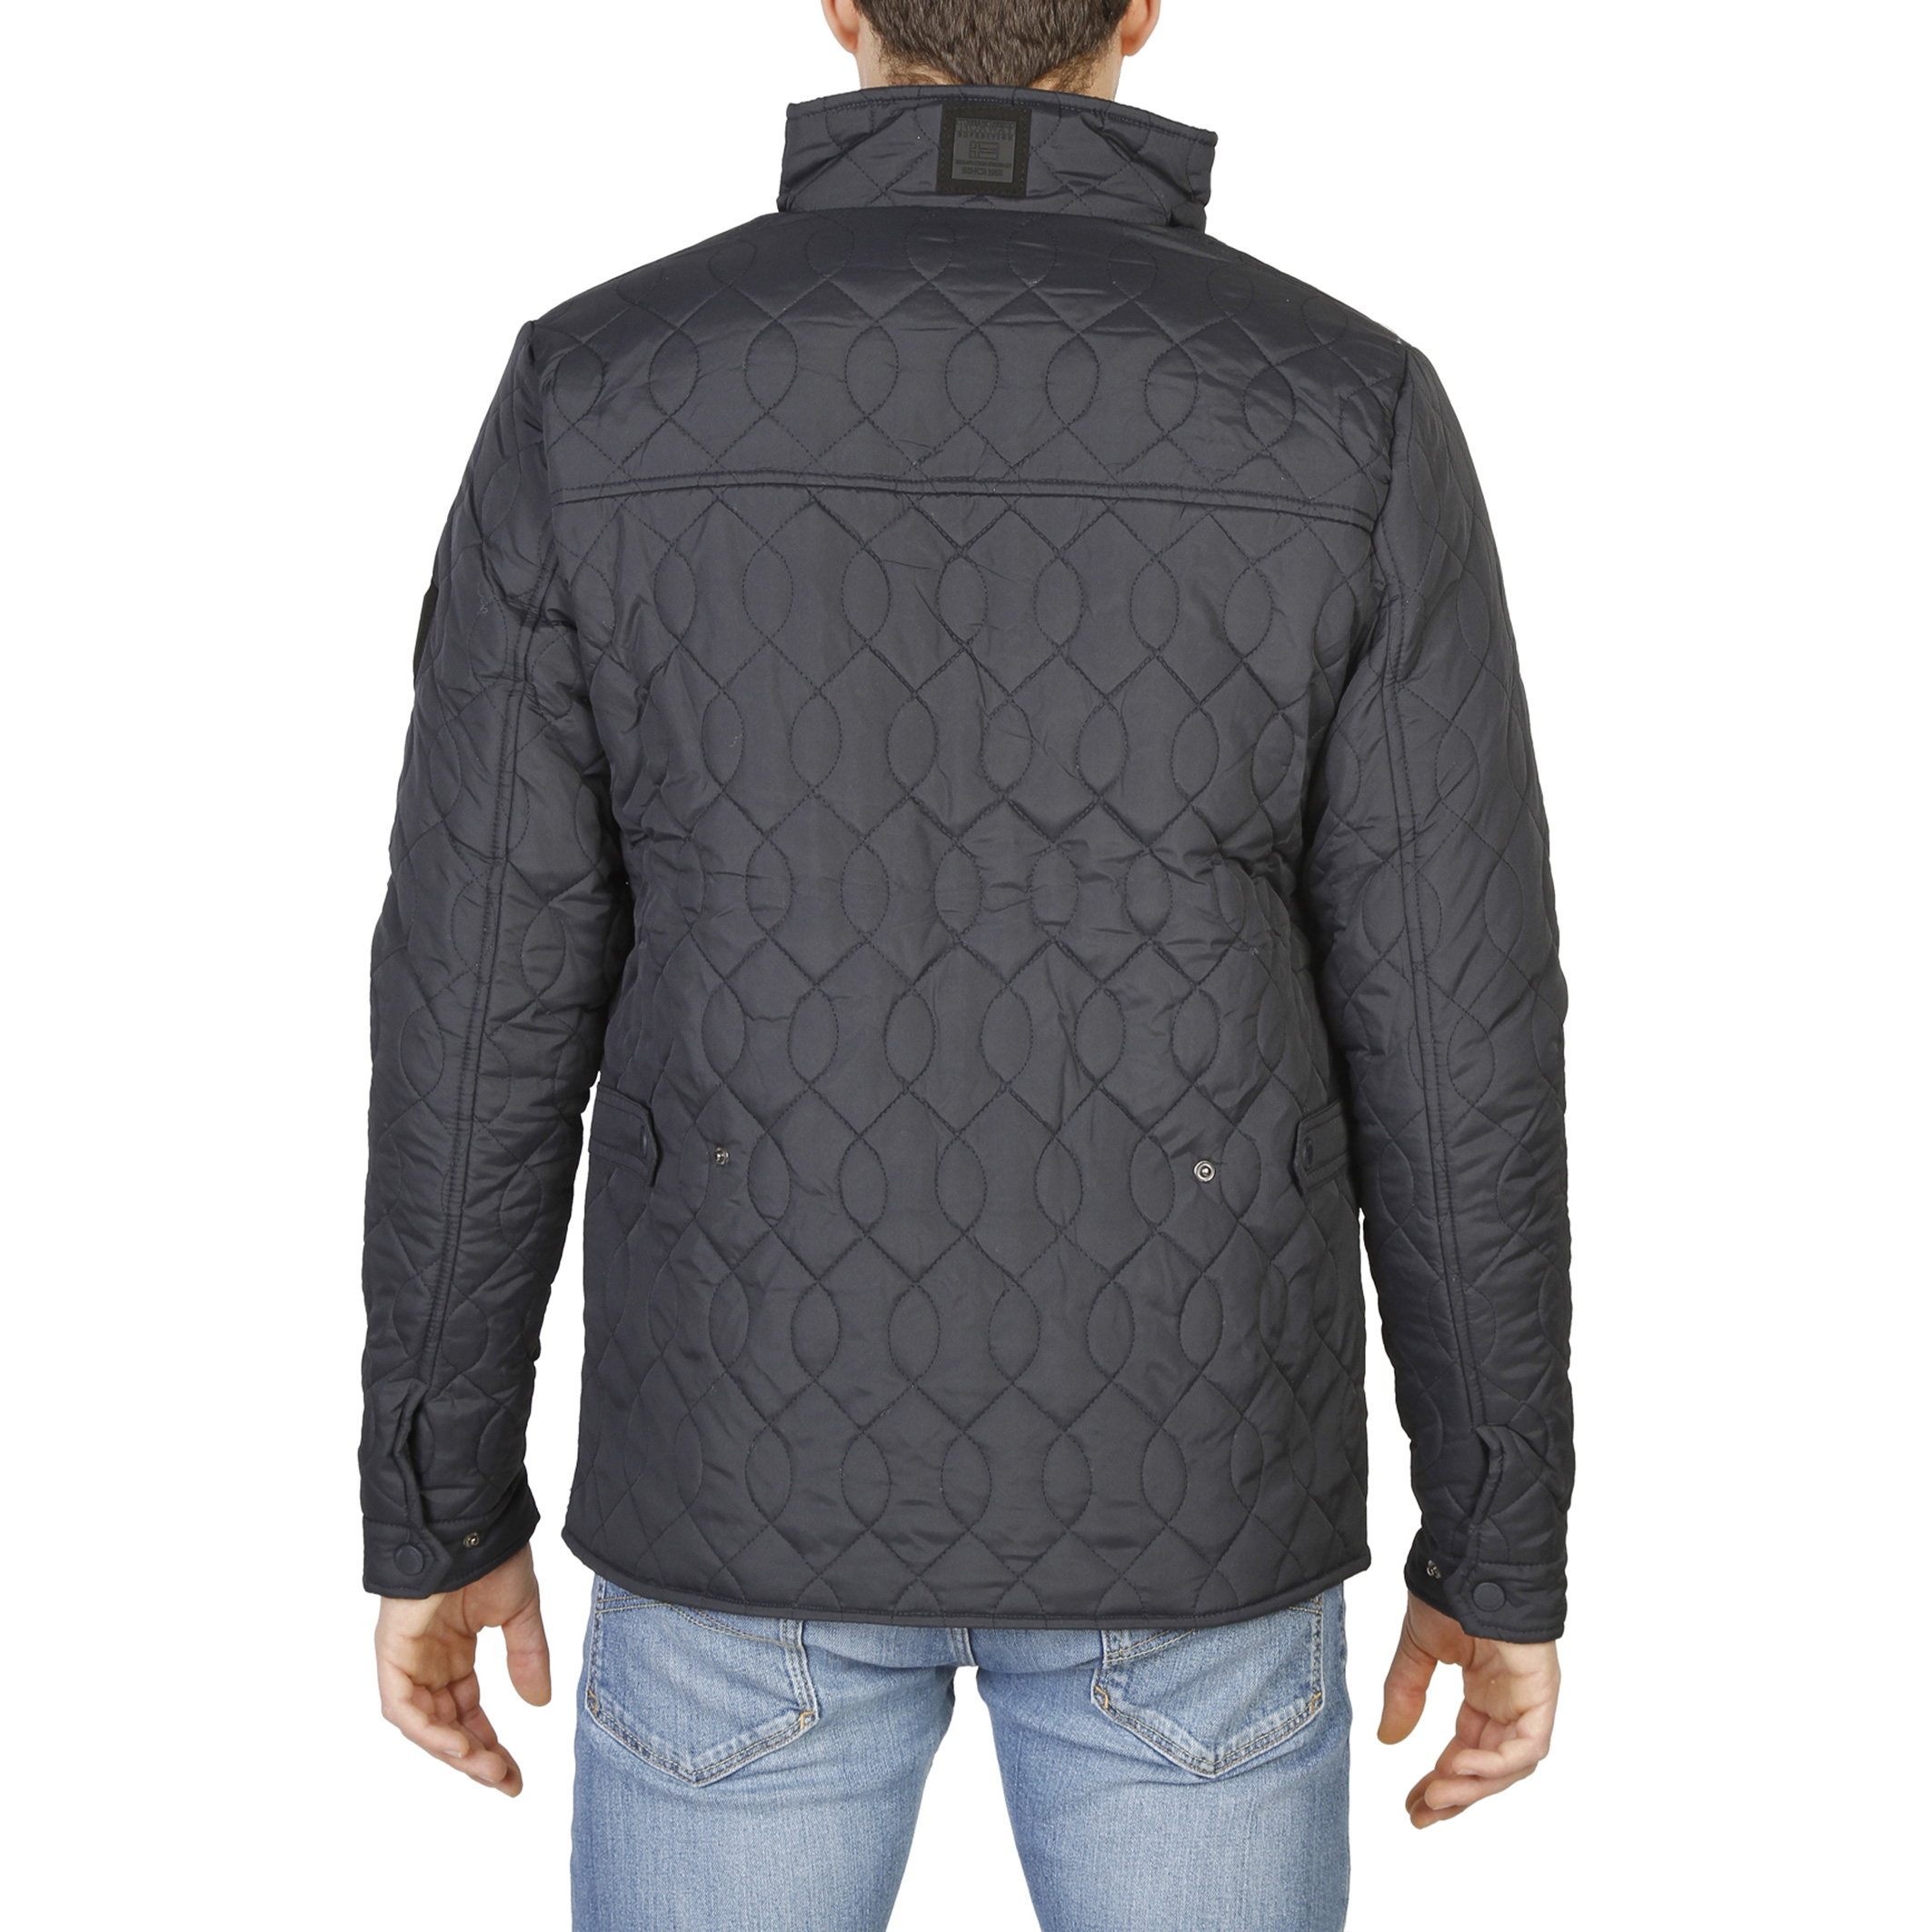 Vestes & blousons  Geographical norway Biturbo_man blue